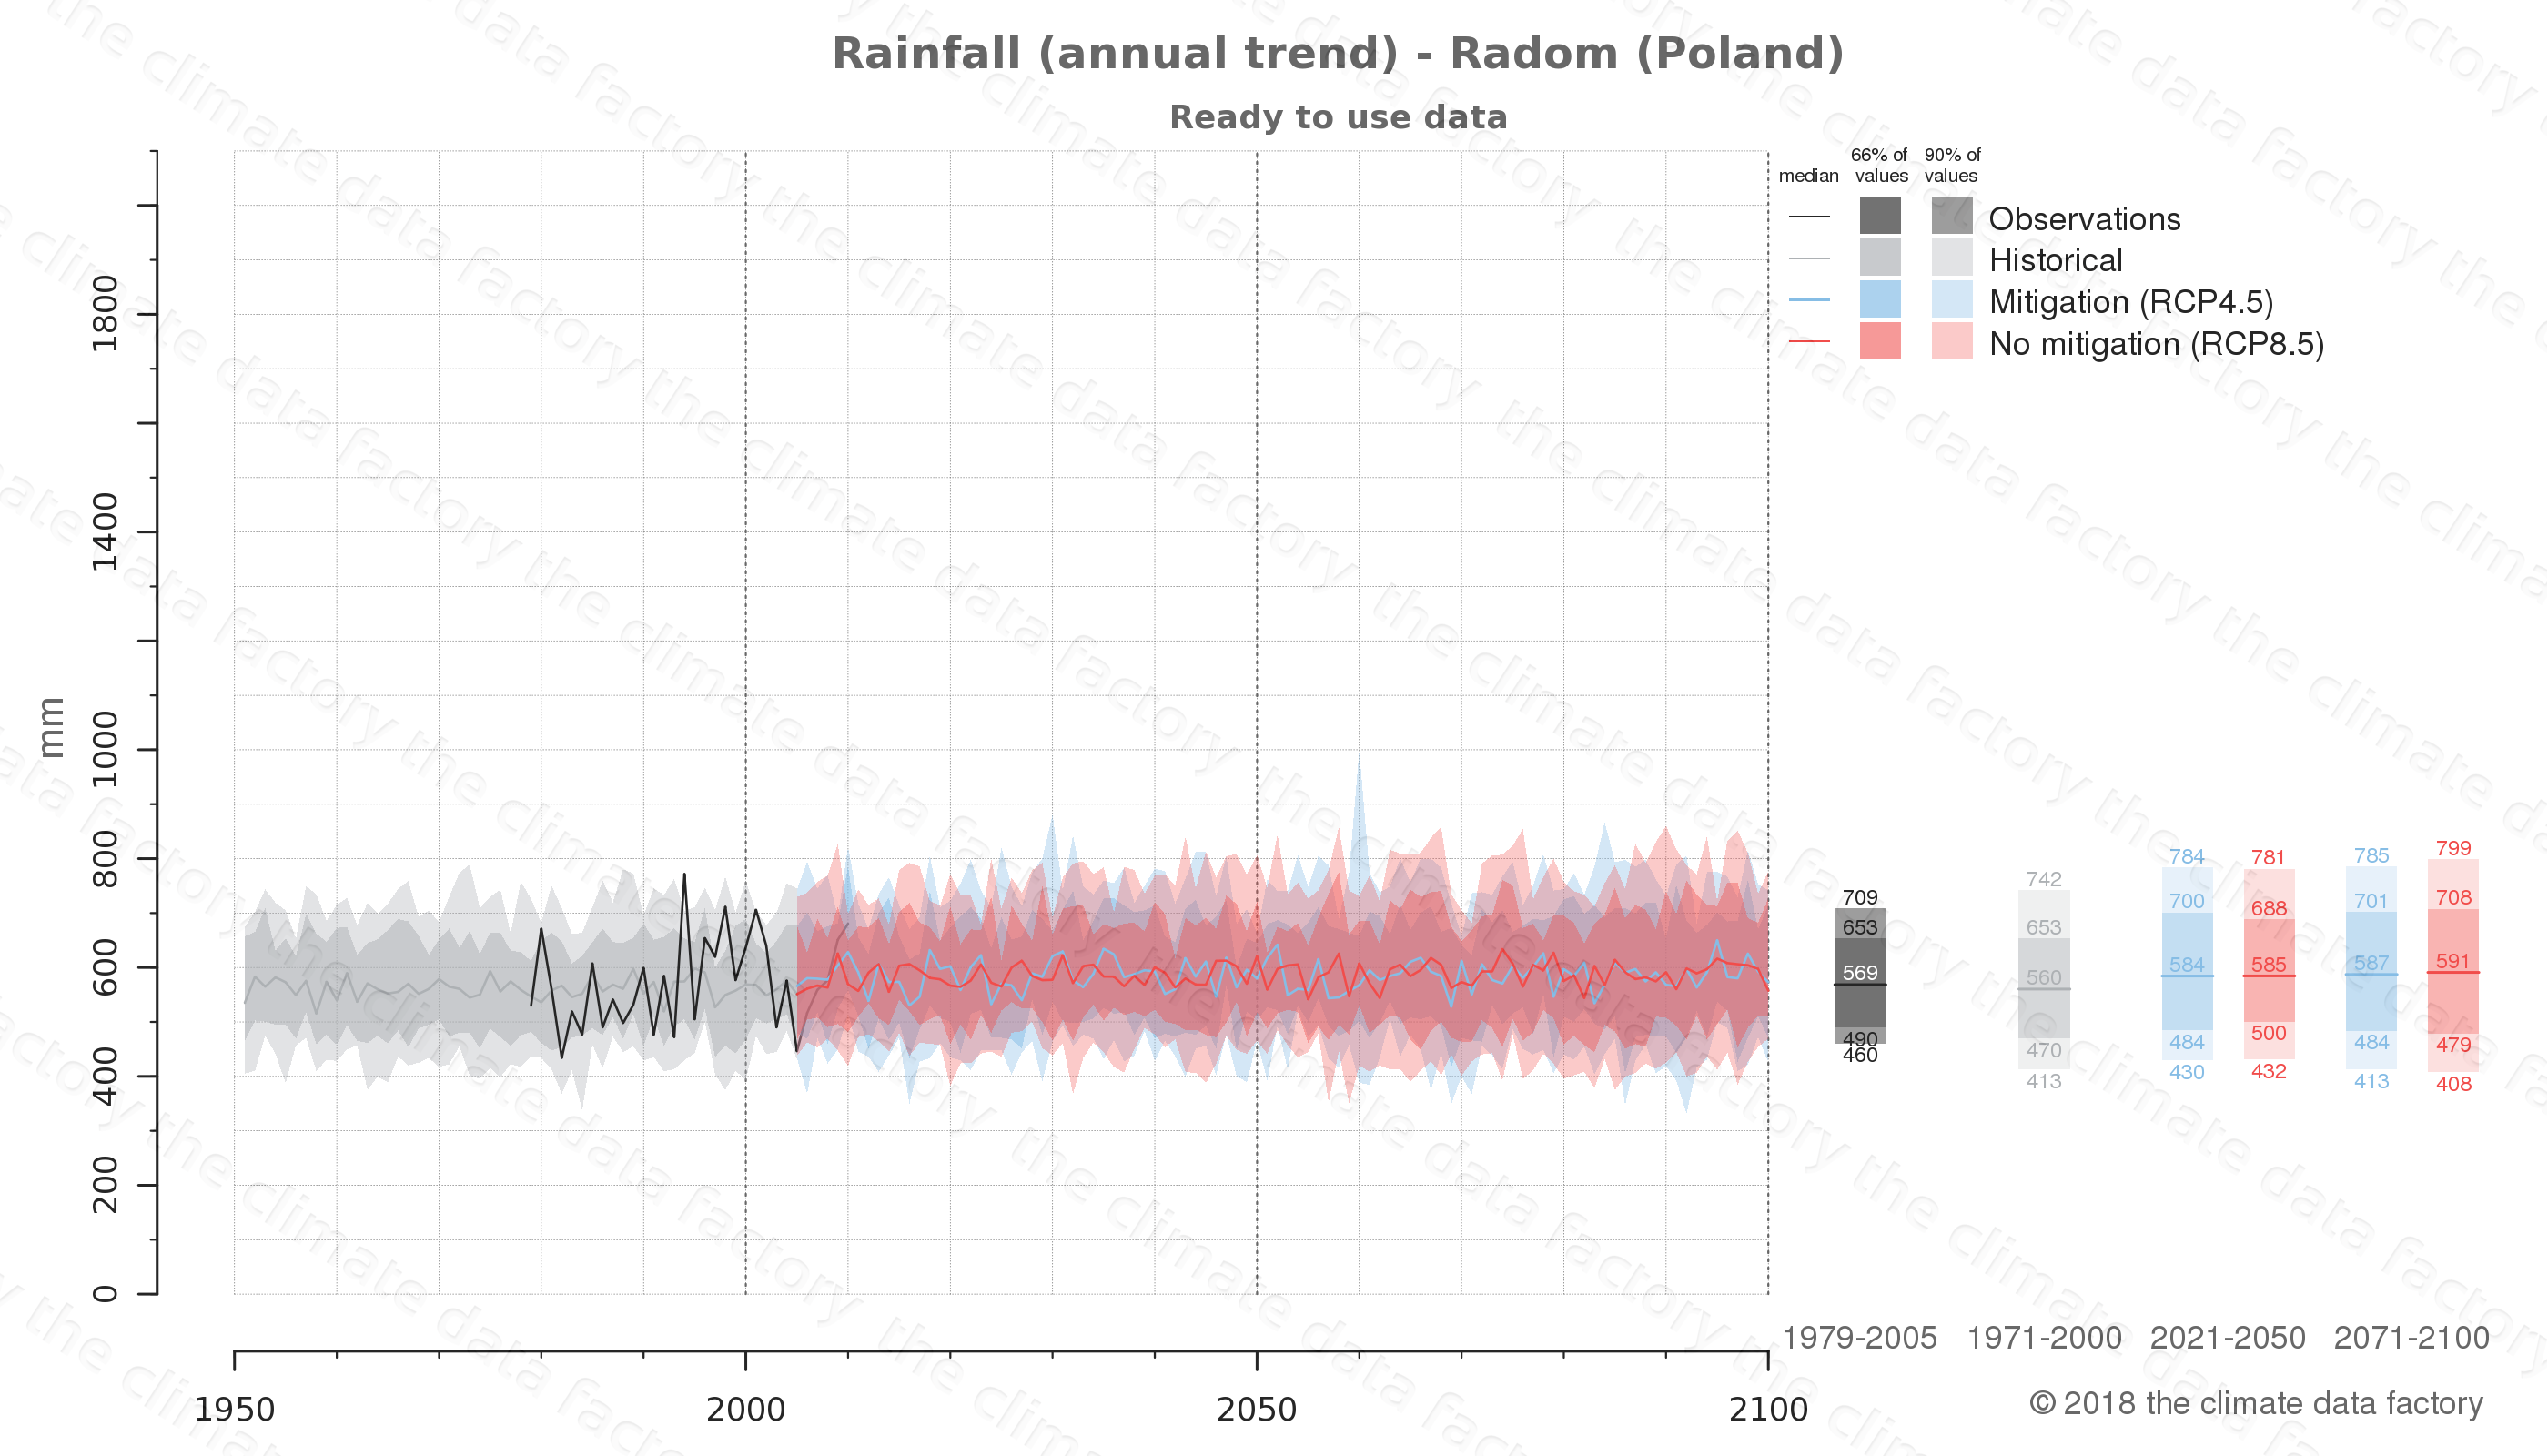 climate change data policy adaptation climate graph city data rainfall radom poland